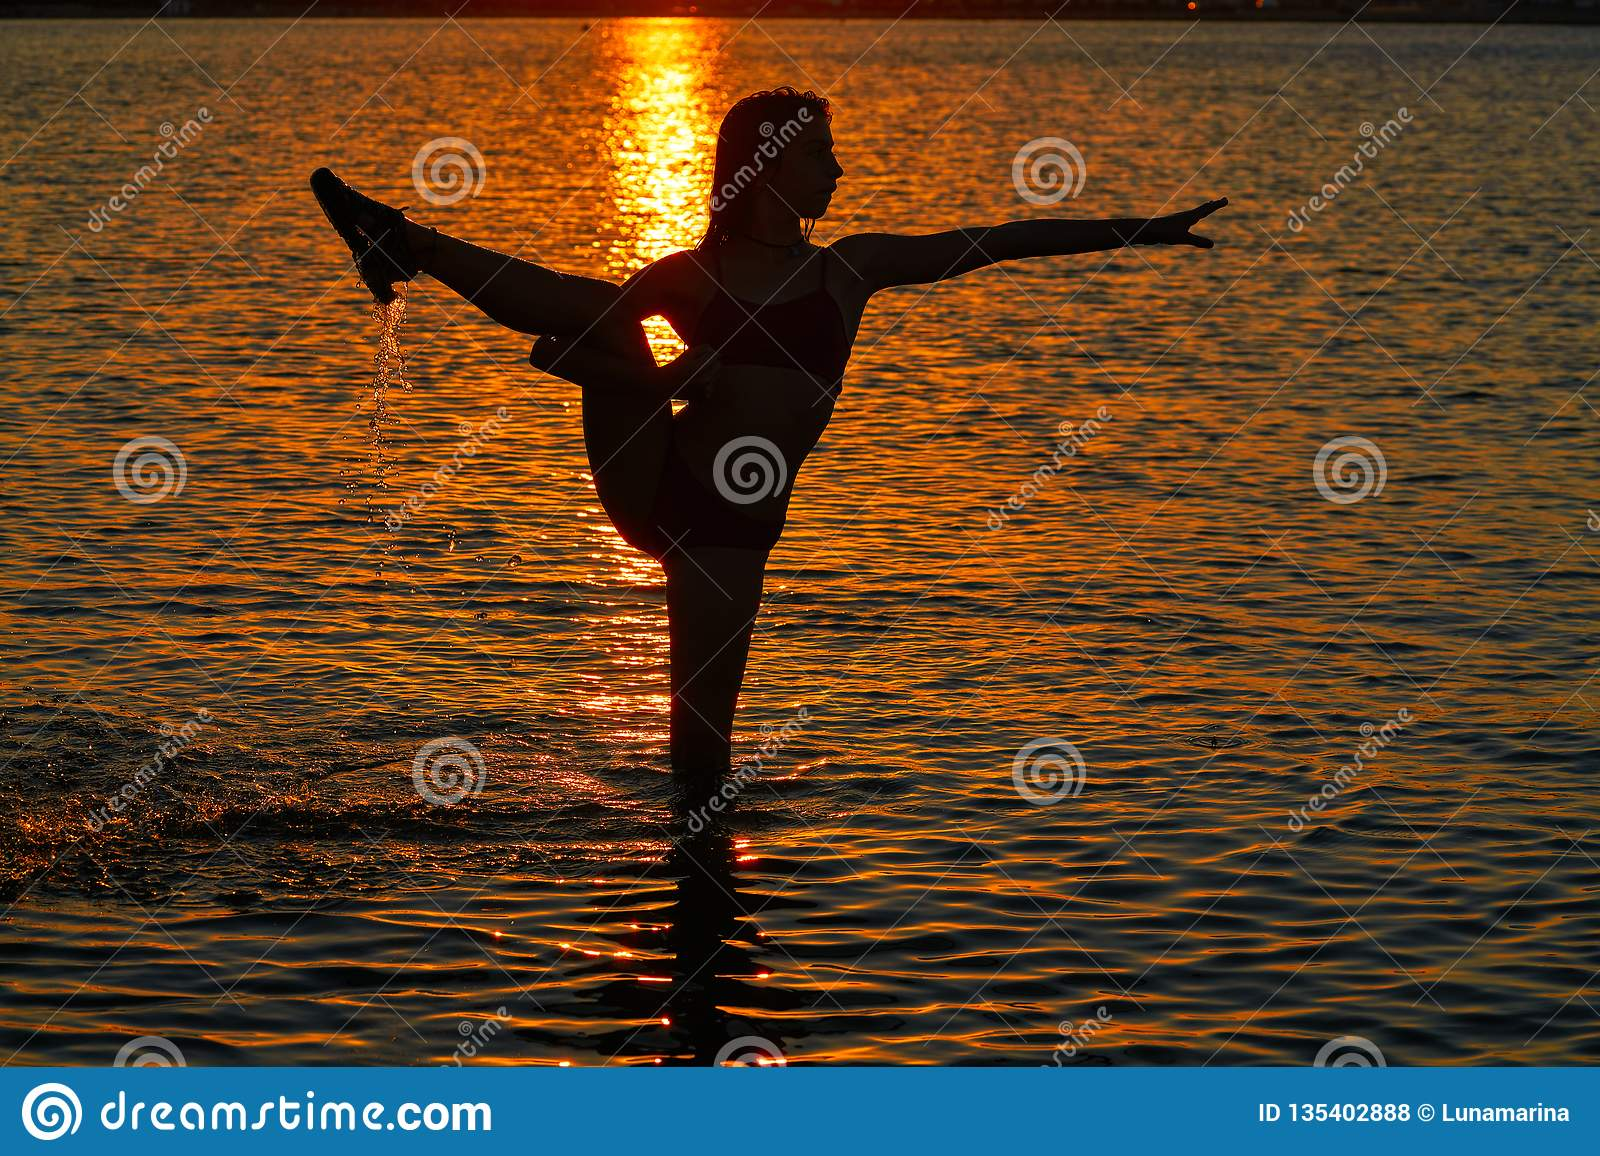 Girl gymnastics pose at sunset beach